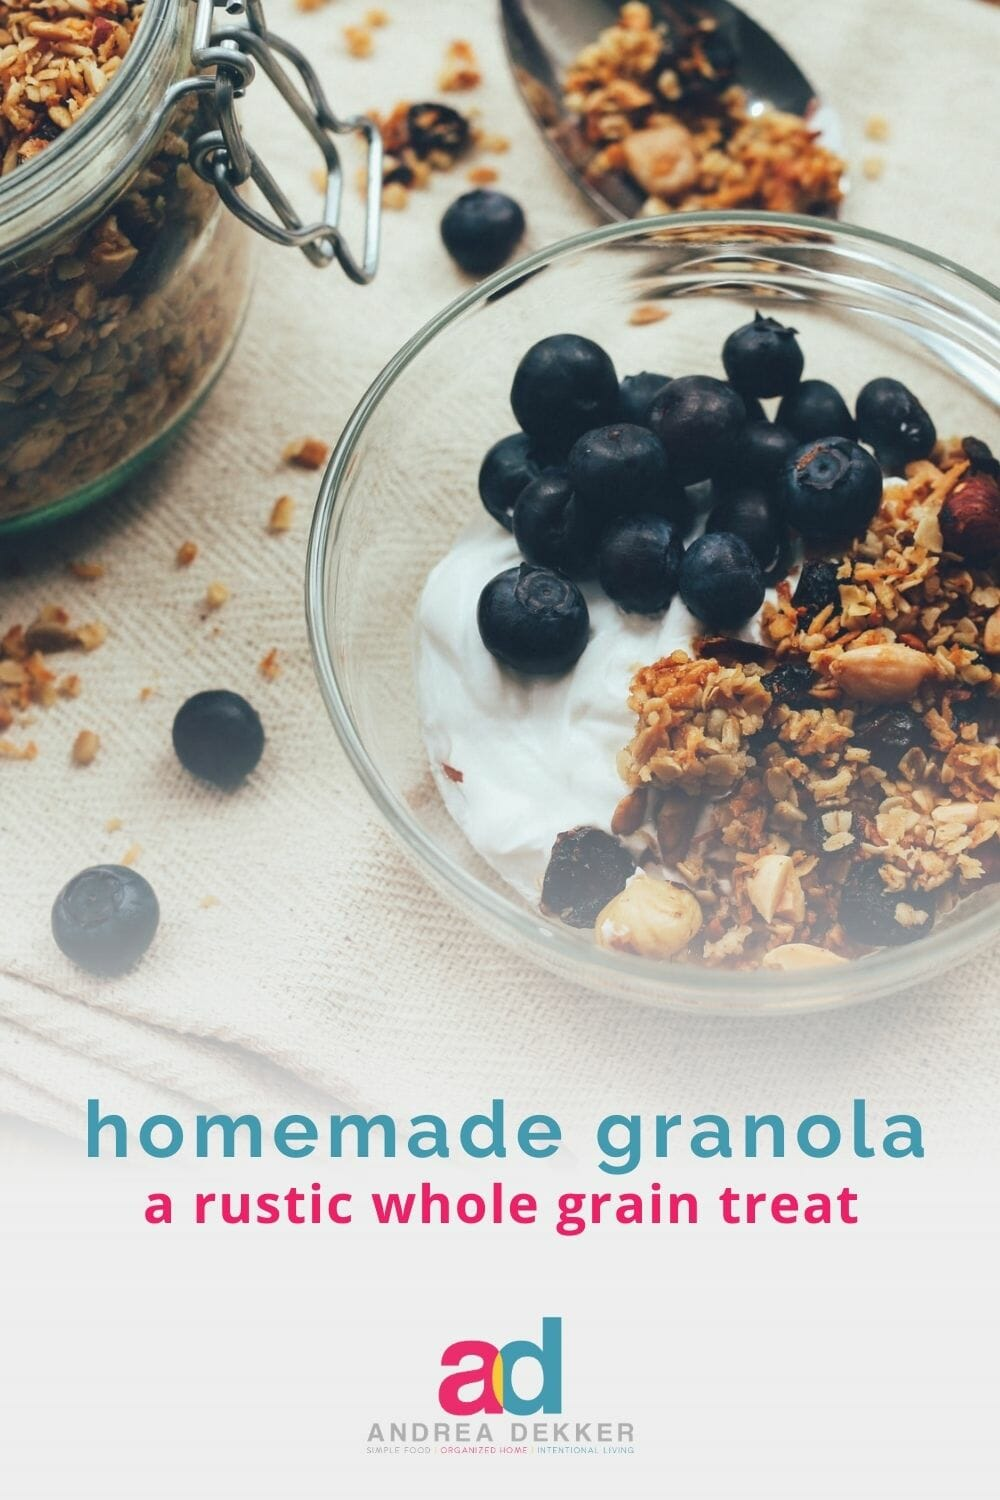 Want a delicious, nutritious, hearty whole-grain snack that will fill you up and satisfy your sweet tooth without the guilt? This recipe for rustic, whole-grain granola should do the trick! via @andreadekker